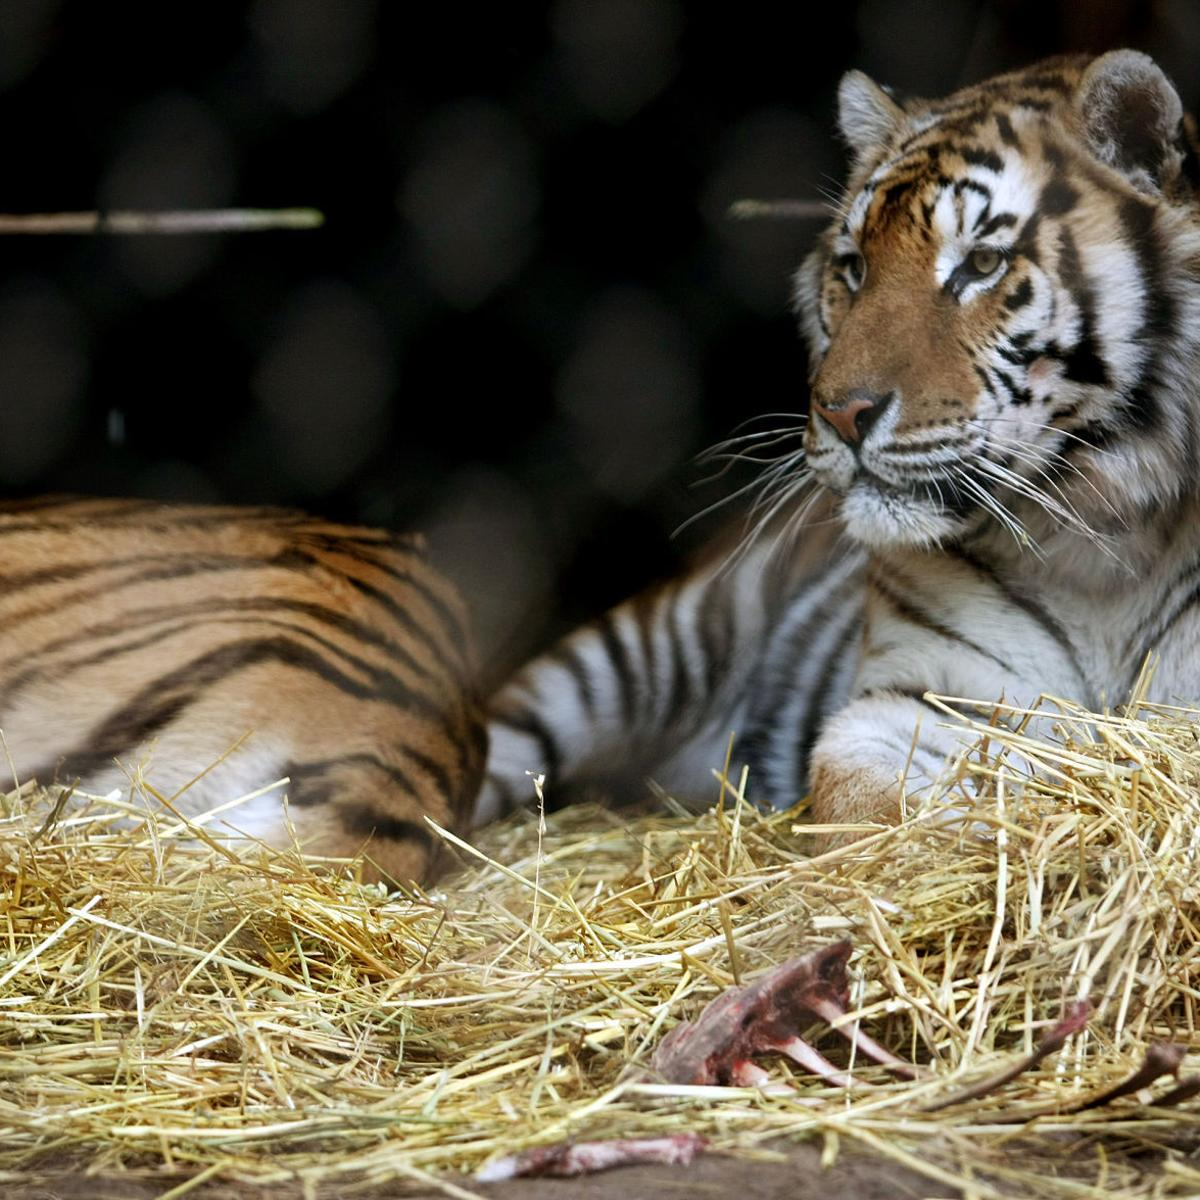 After tiger attack, 18 animals removed from Spearfish